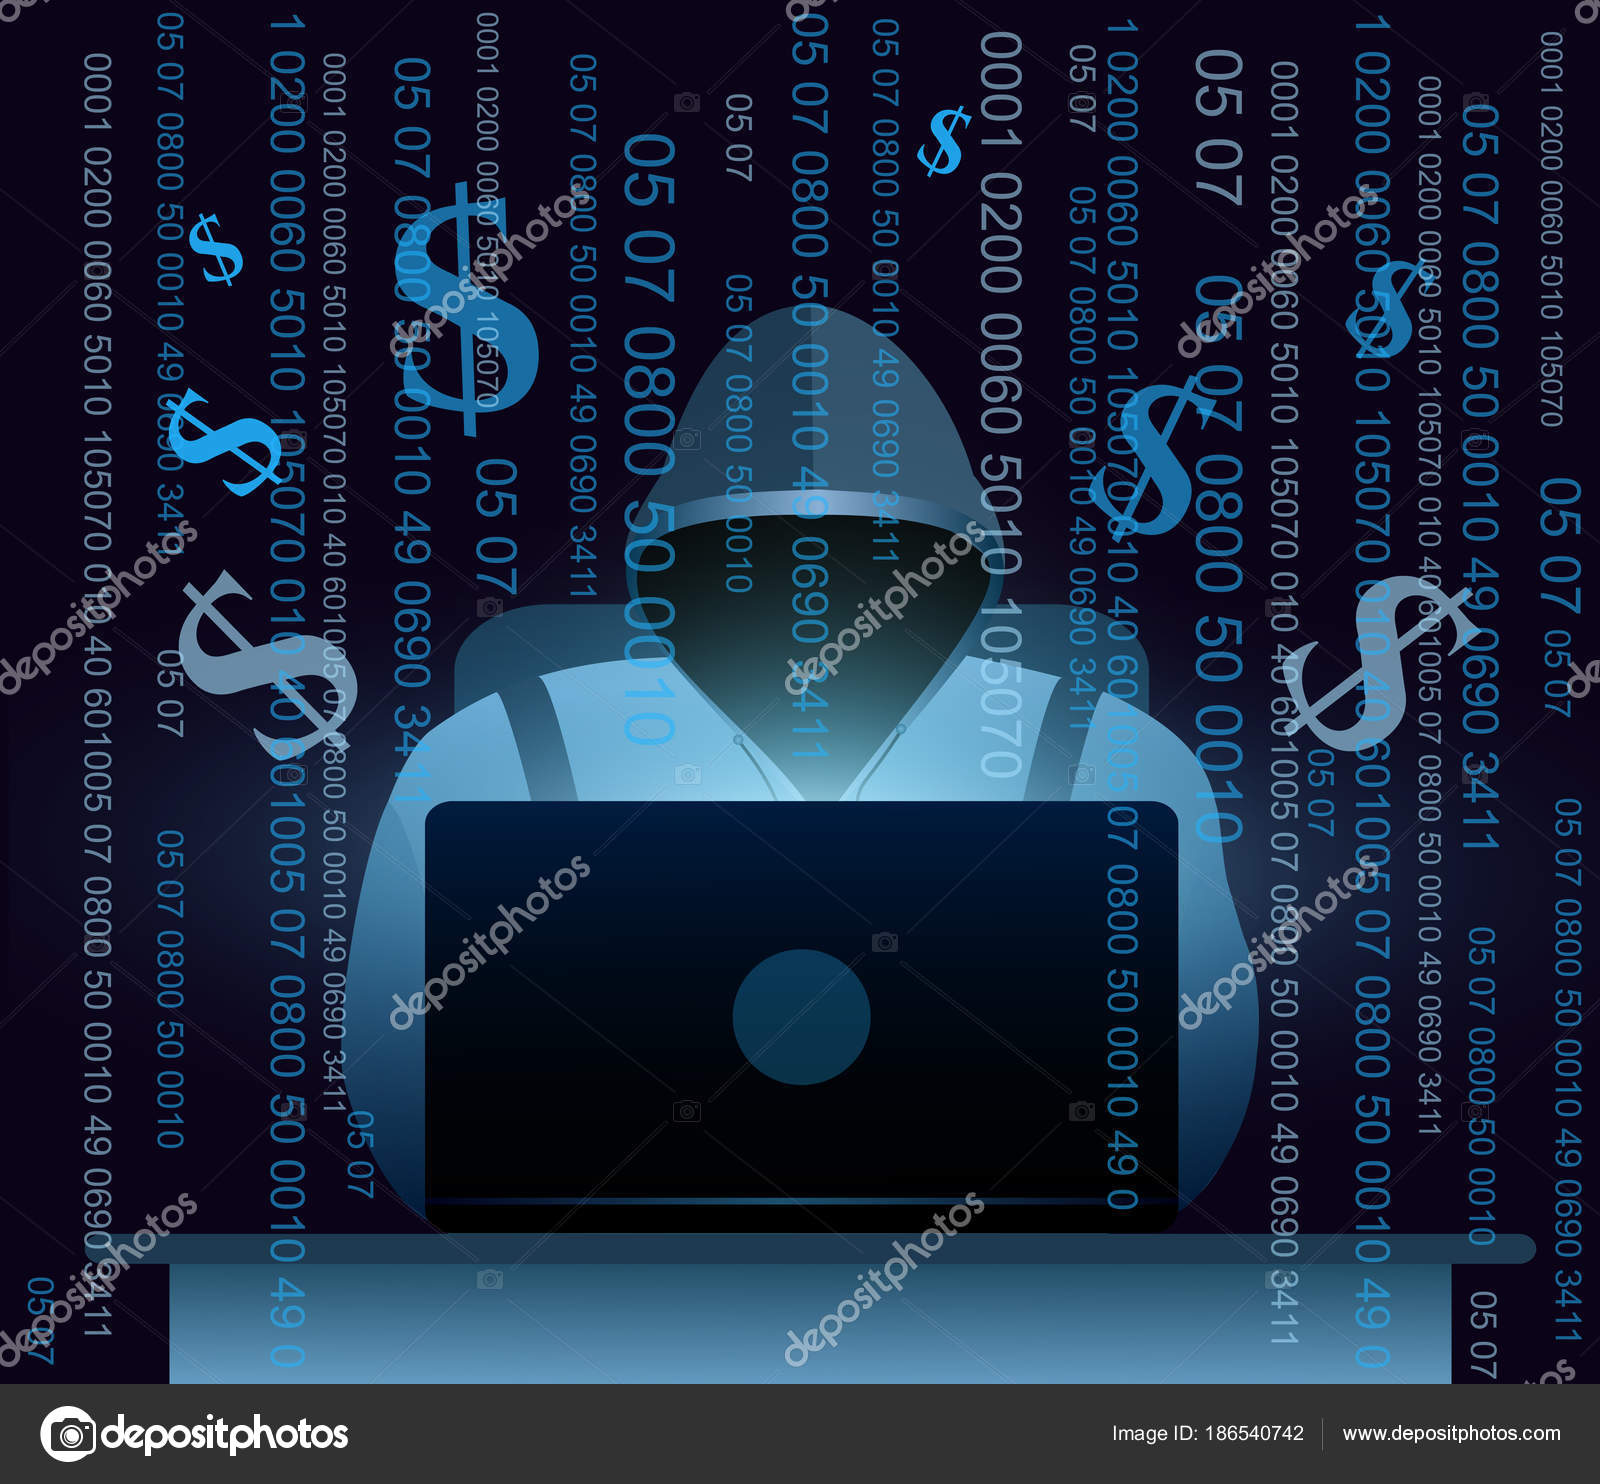 Vector Illustration Of Hacker With Laptop Hacking The Internet On